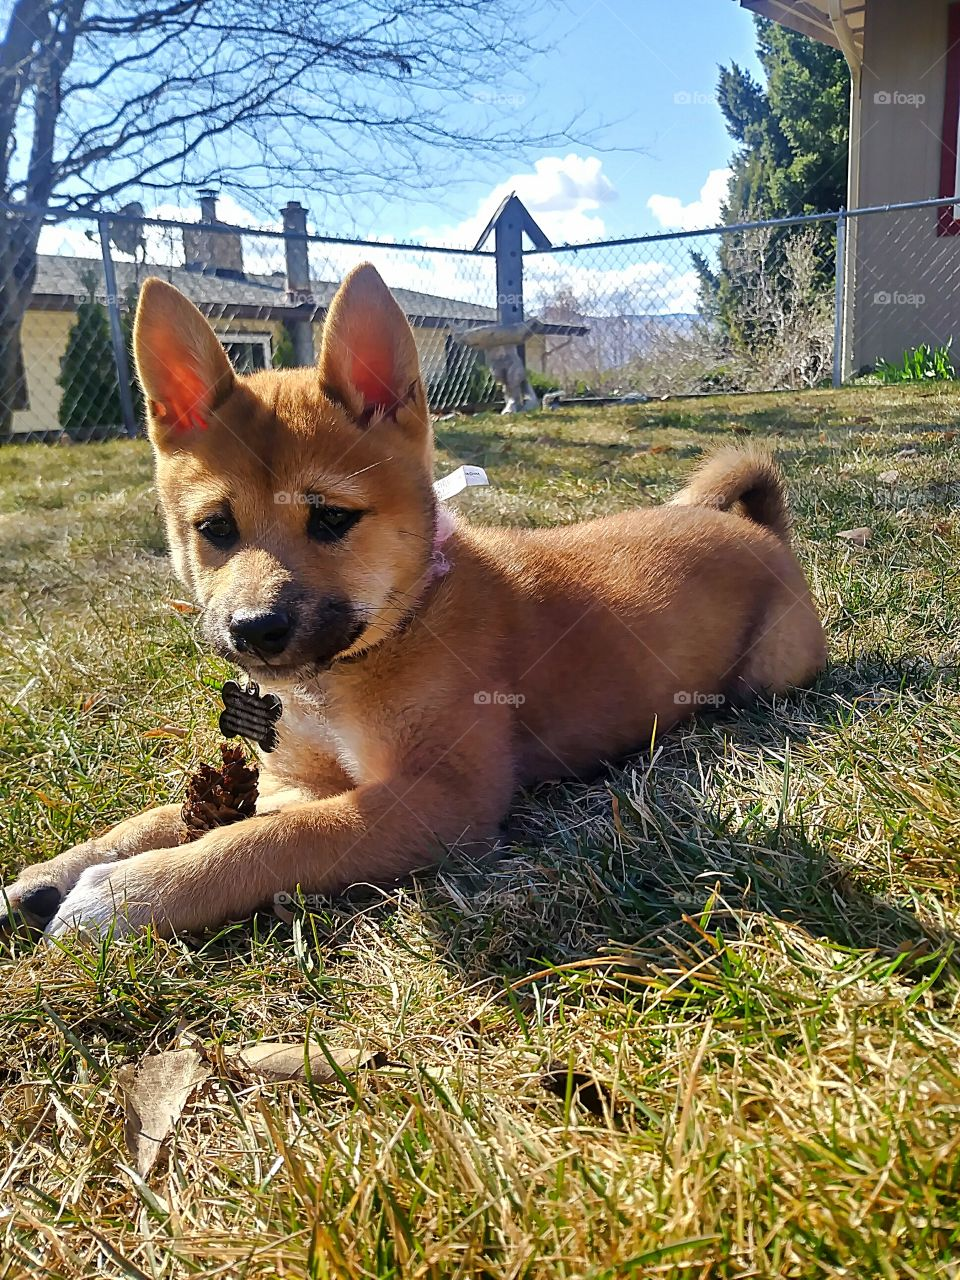 An adorable Shiba Inu pup playing with a pinecone outside